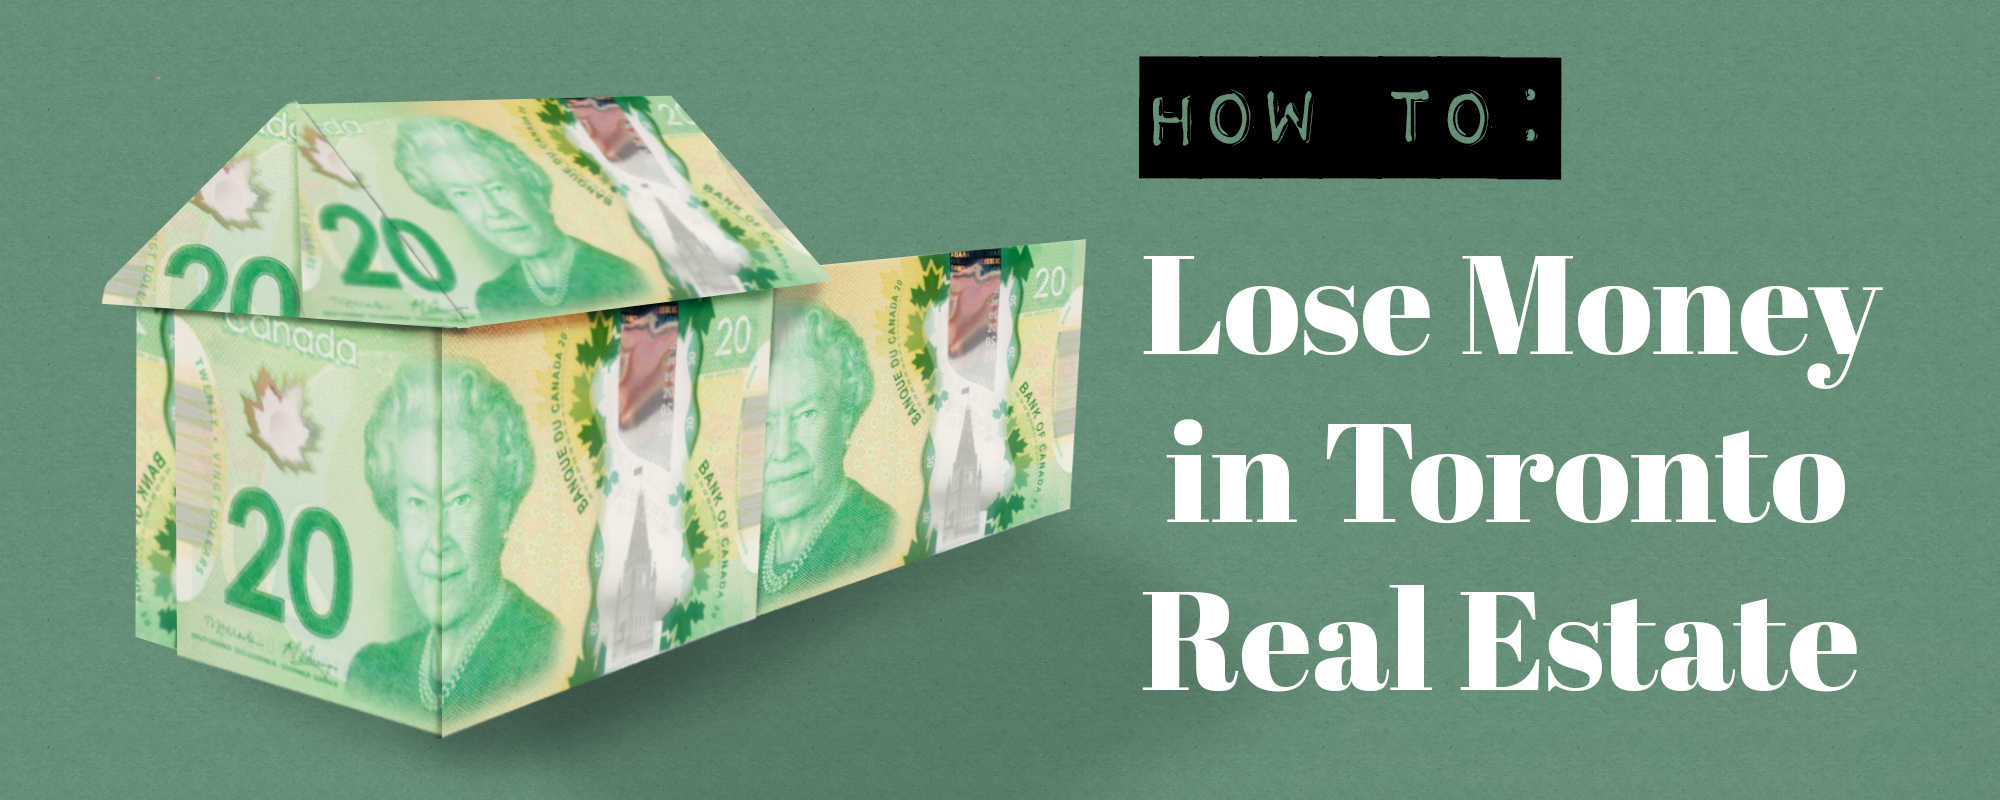 How to Lose Money on Toronto Real Estate